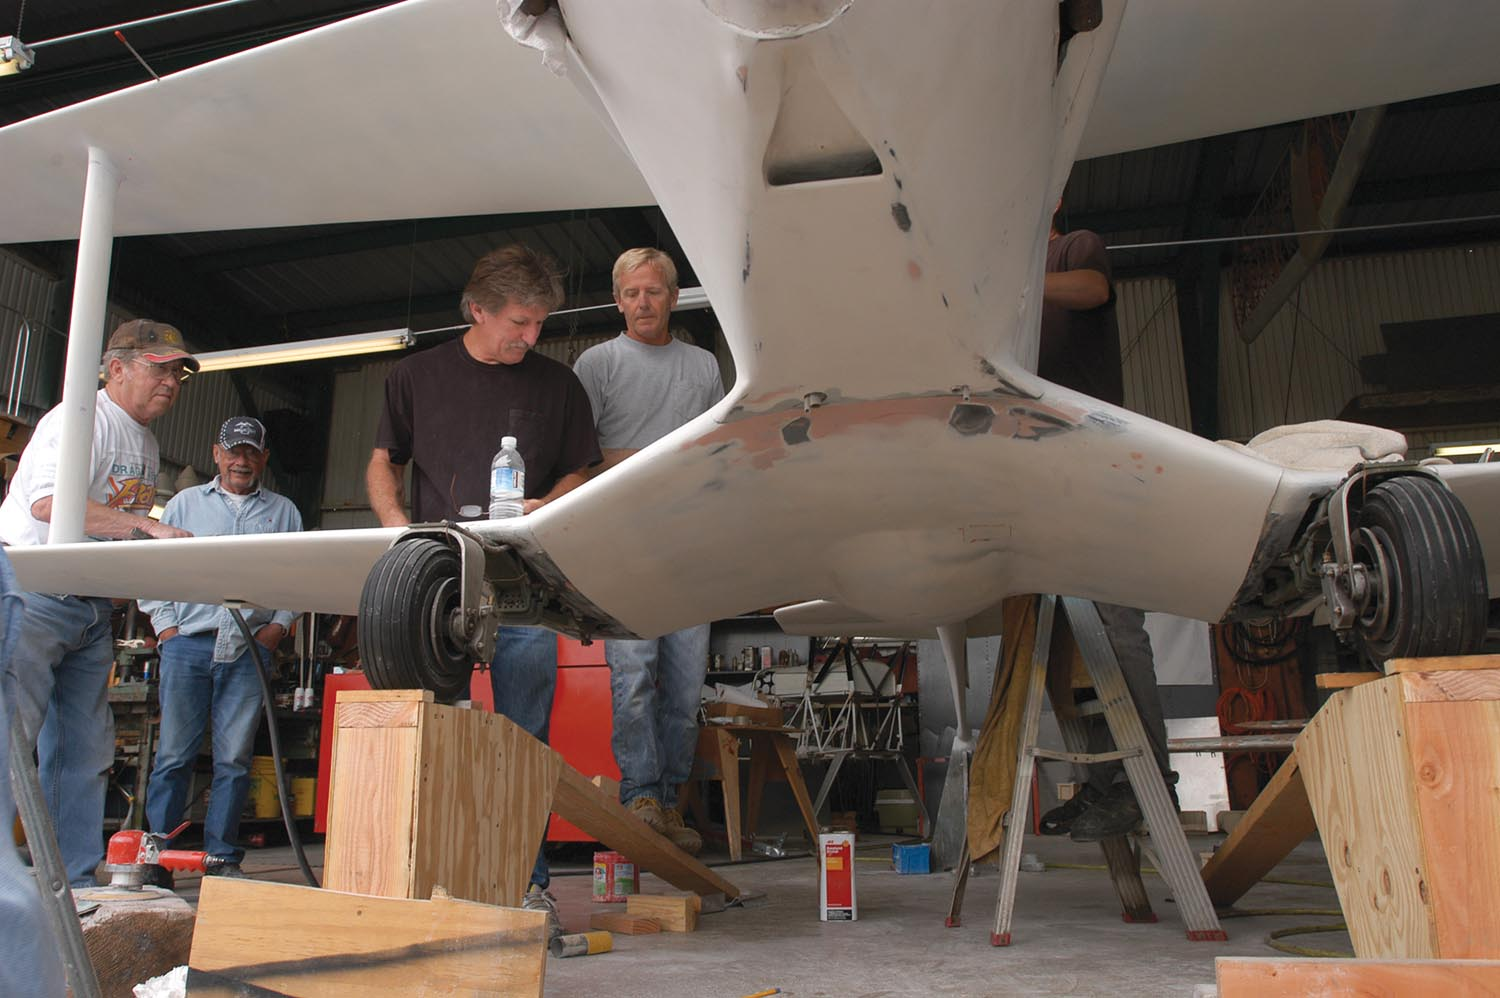 Lee Dorrance, Bob Busch, Andy Paterson, and Steve Wilkenson prep Phantom for its first paint job in 2005. This view shows the oil cooler NACA duct under the cowling and partially shows the cantilever leaf-spring landing gear. A Bob Busch design, the gear was made by cutting up a 4-inch-wide single leaf spring—probably from a pickup truck—and building a multi-bracket, rubber-cushioned attachment that works well. Its drawbacks are the 5.00-5 tires droop more than desirable in flight and it's heavy.